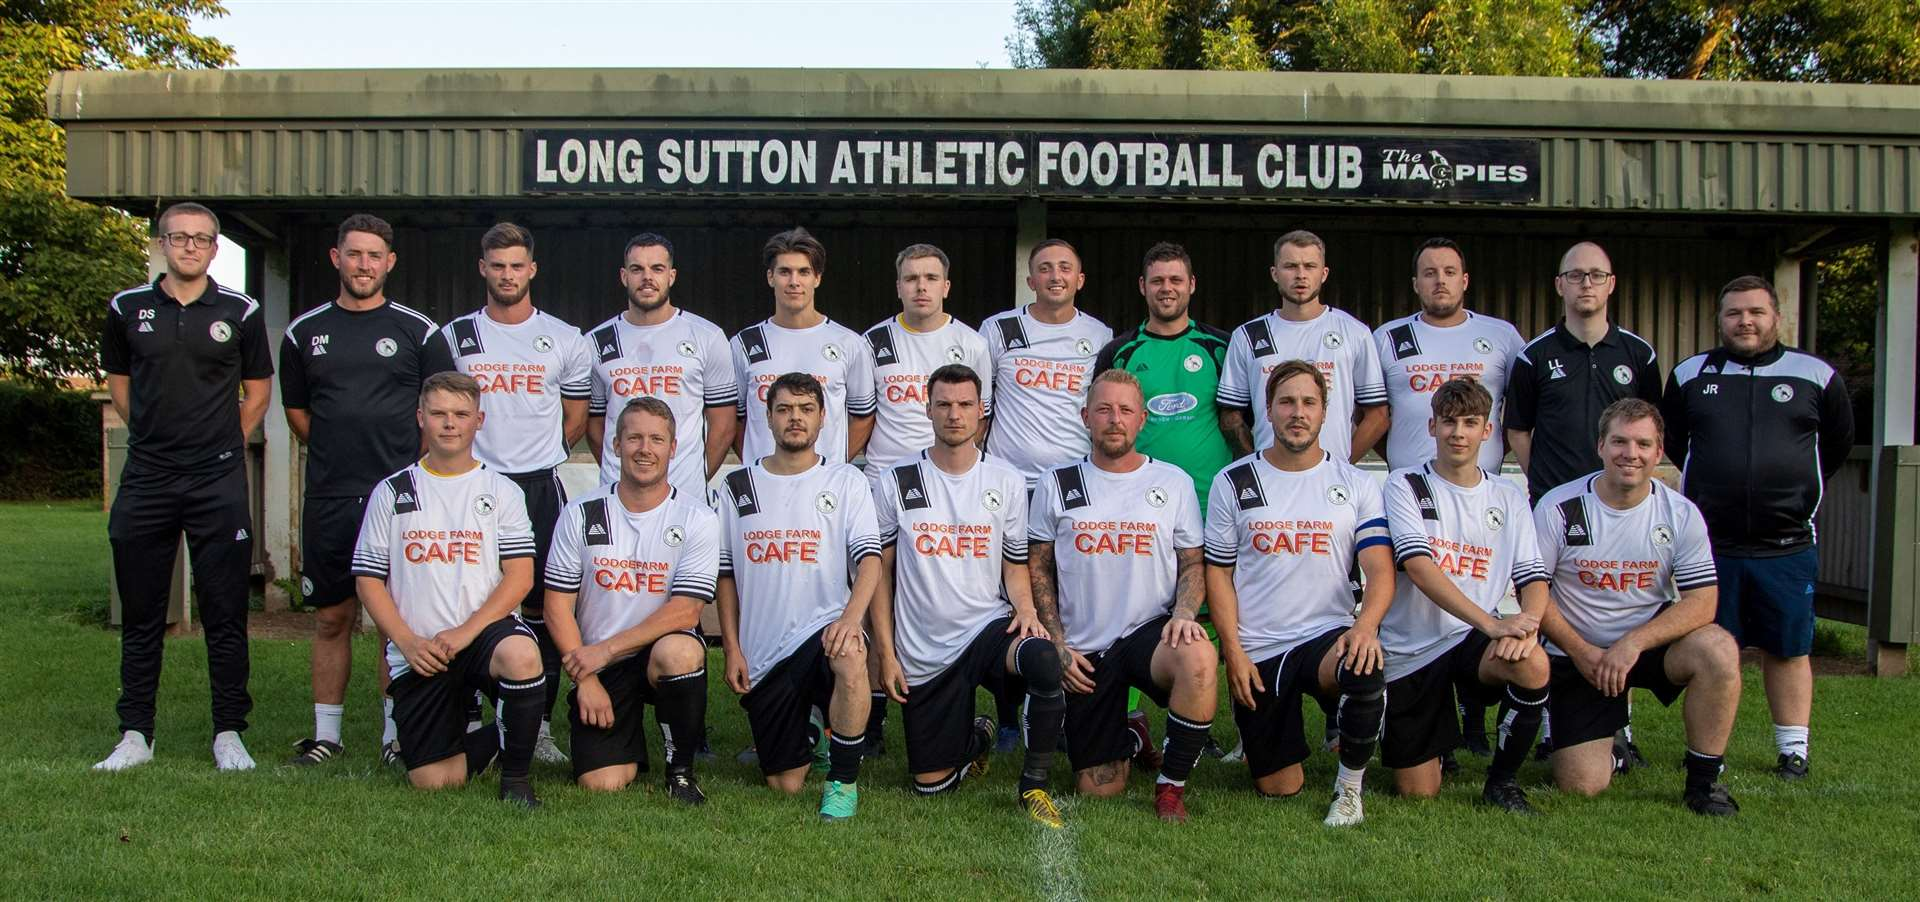 Long Sutton Athletic are eighth in the PDFL Premier Division after their eighth win of the season at Oakham United.